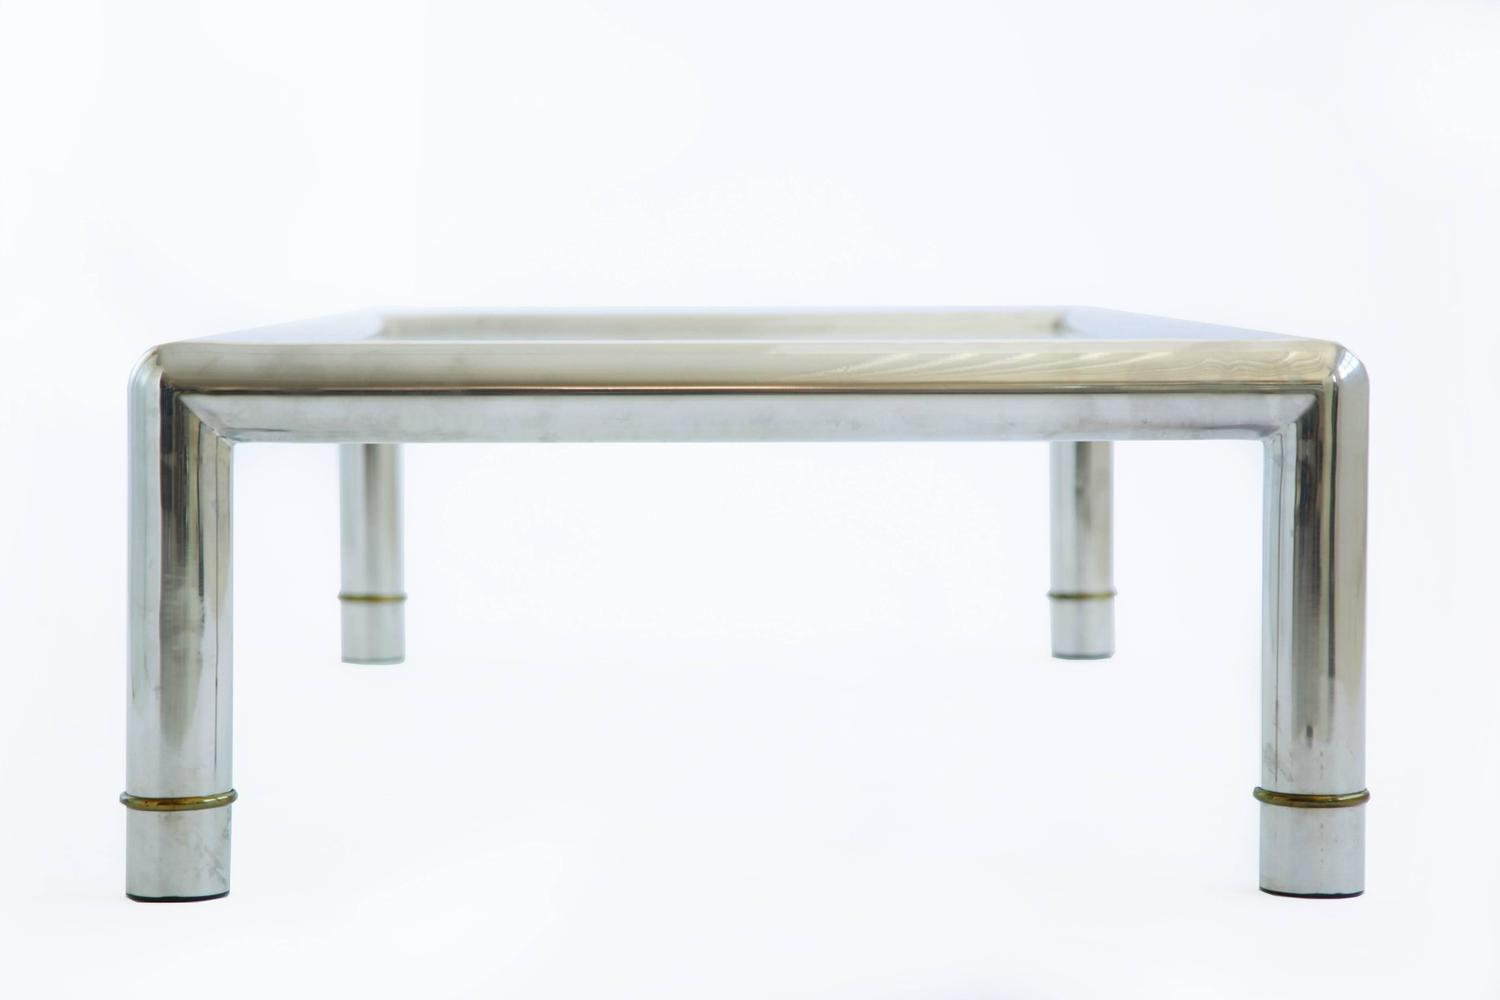 Large rectangular mastercraft cocktail table for sale at for Cocktail tables for sale in kzn